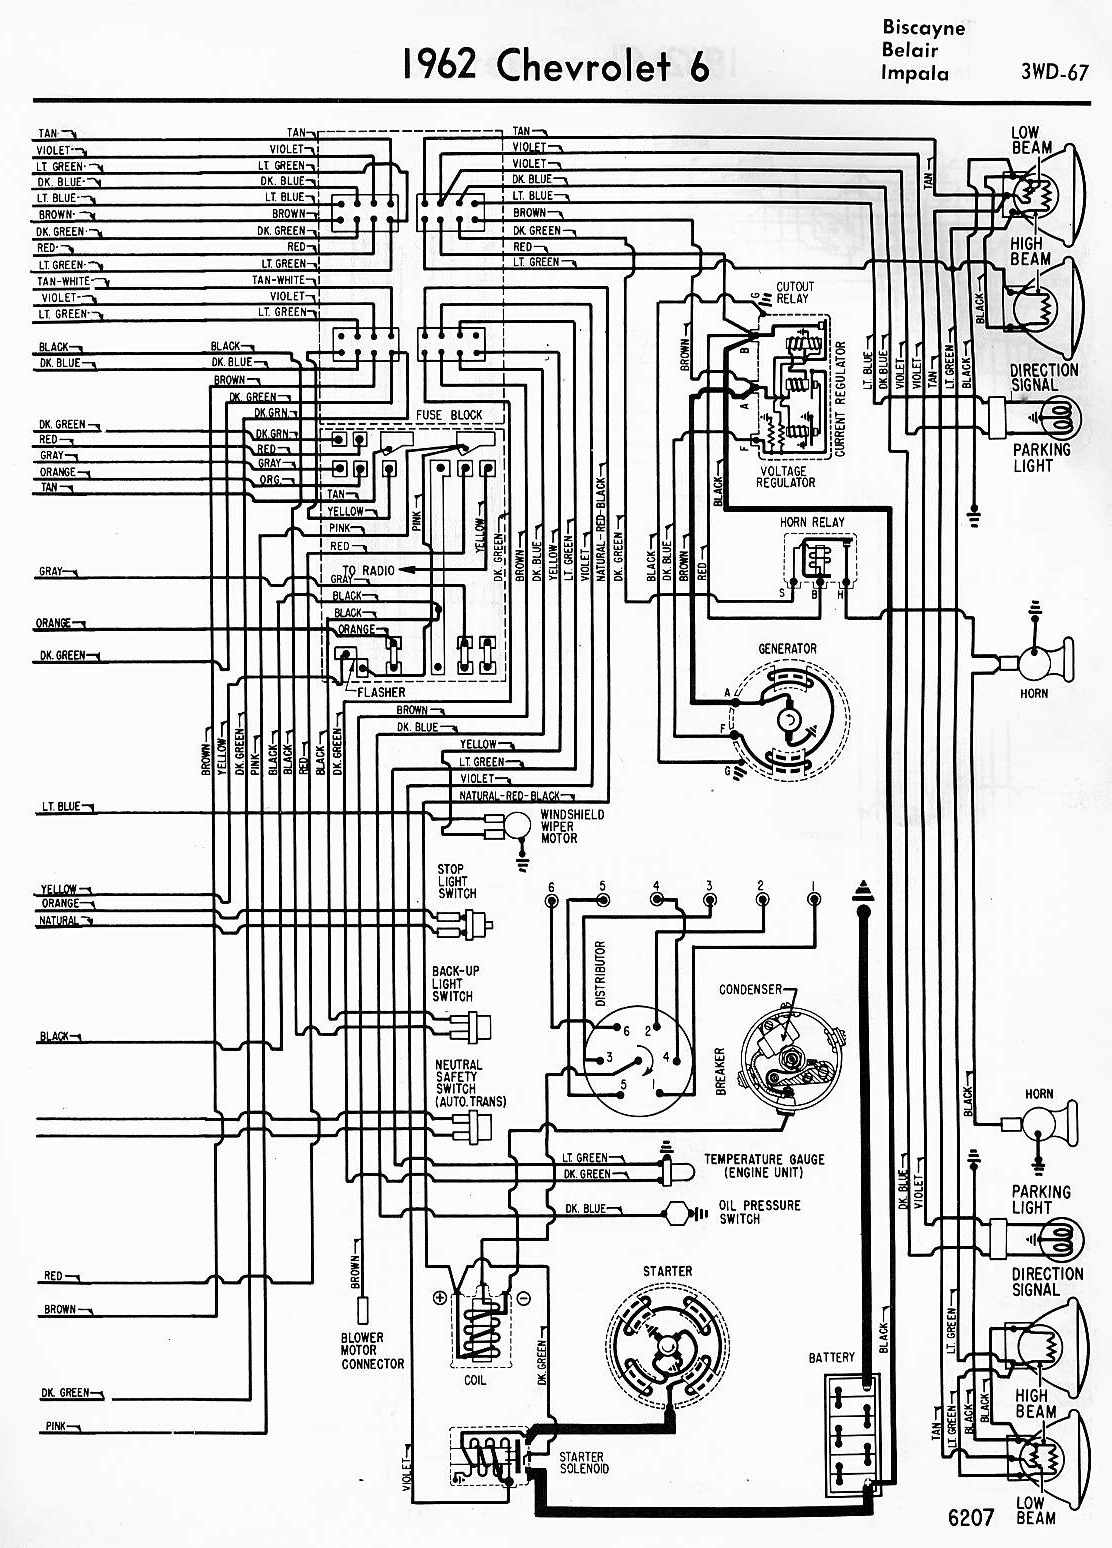 Electrical+Wiring+Diagram+Of+1964+Chevrolet+6 1964 impala wiring harness 1996 jeep cherokee wiring \u2022 wiring 66 Impala Wiring Diagram at metegol.co